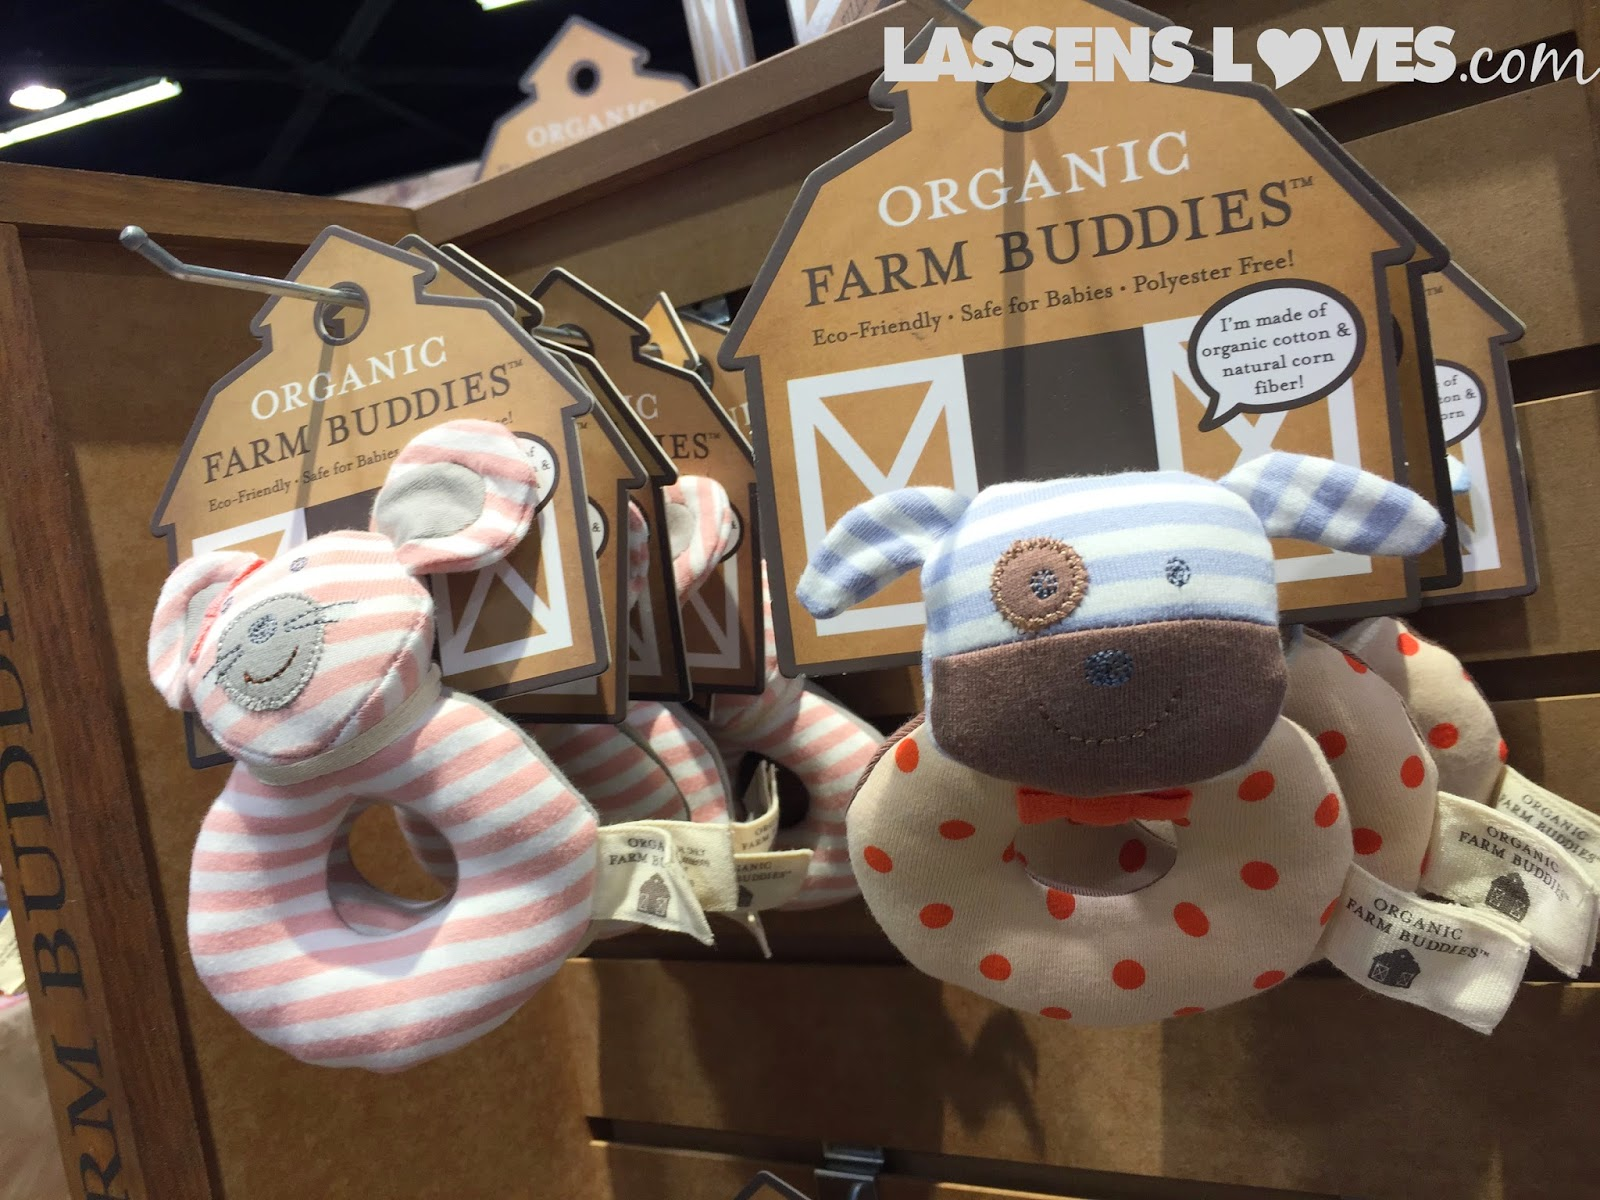 Expo+West+2015, Natural+Foods+Show, New+Natural+Products, organic+cotton, baby+rattles, organic+farm+buddies